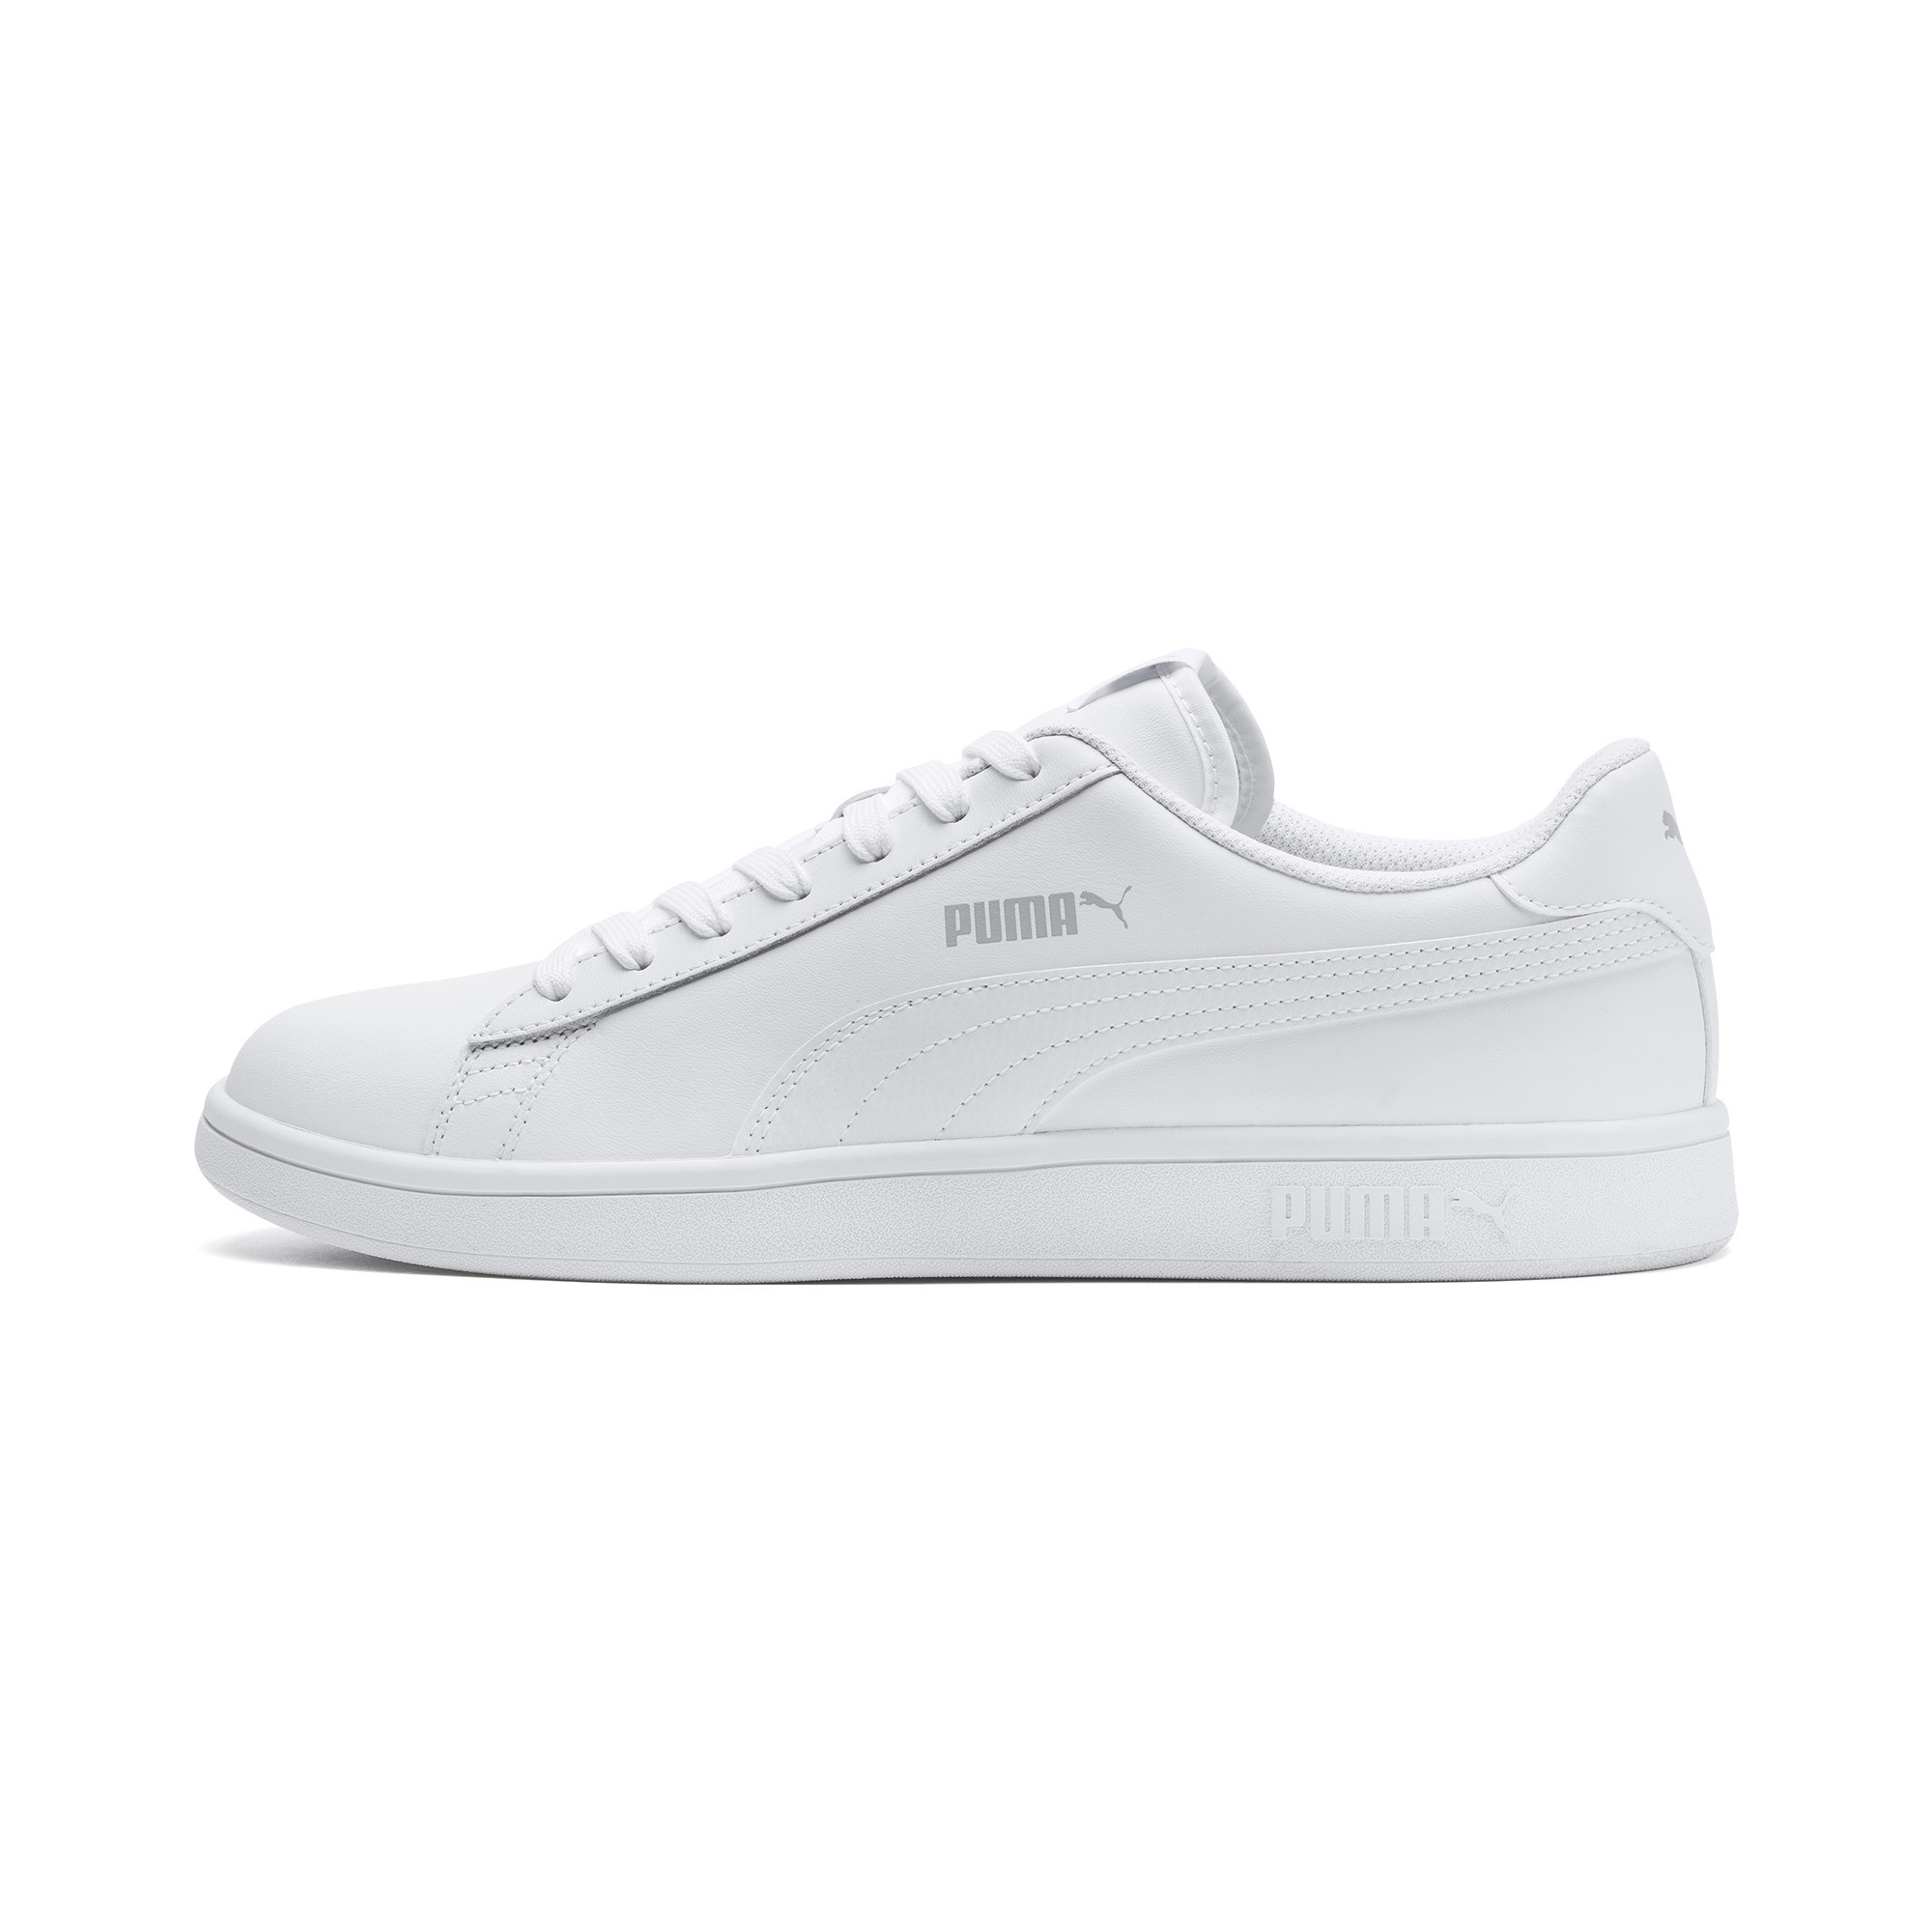 PUMA-PUMA-Smash-v2-Men-039-s-Sneakers-Men-Shoe-Basics thumbnail 27